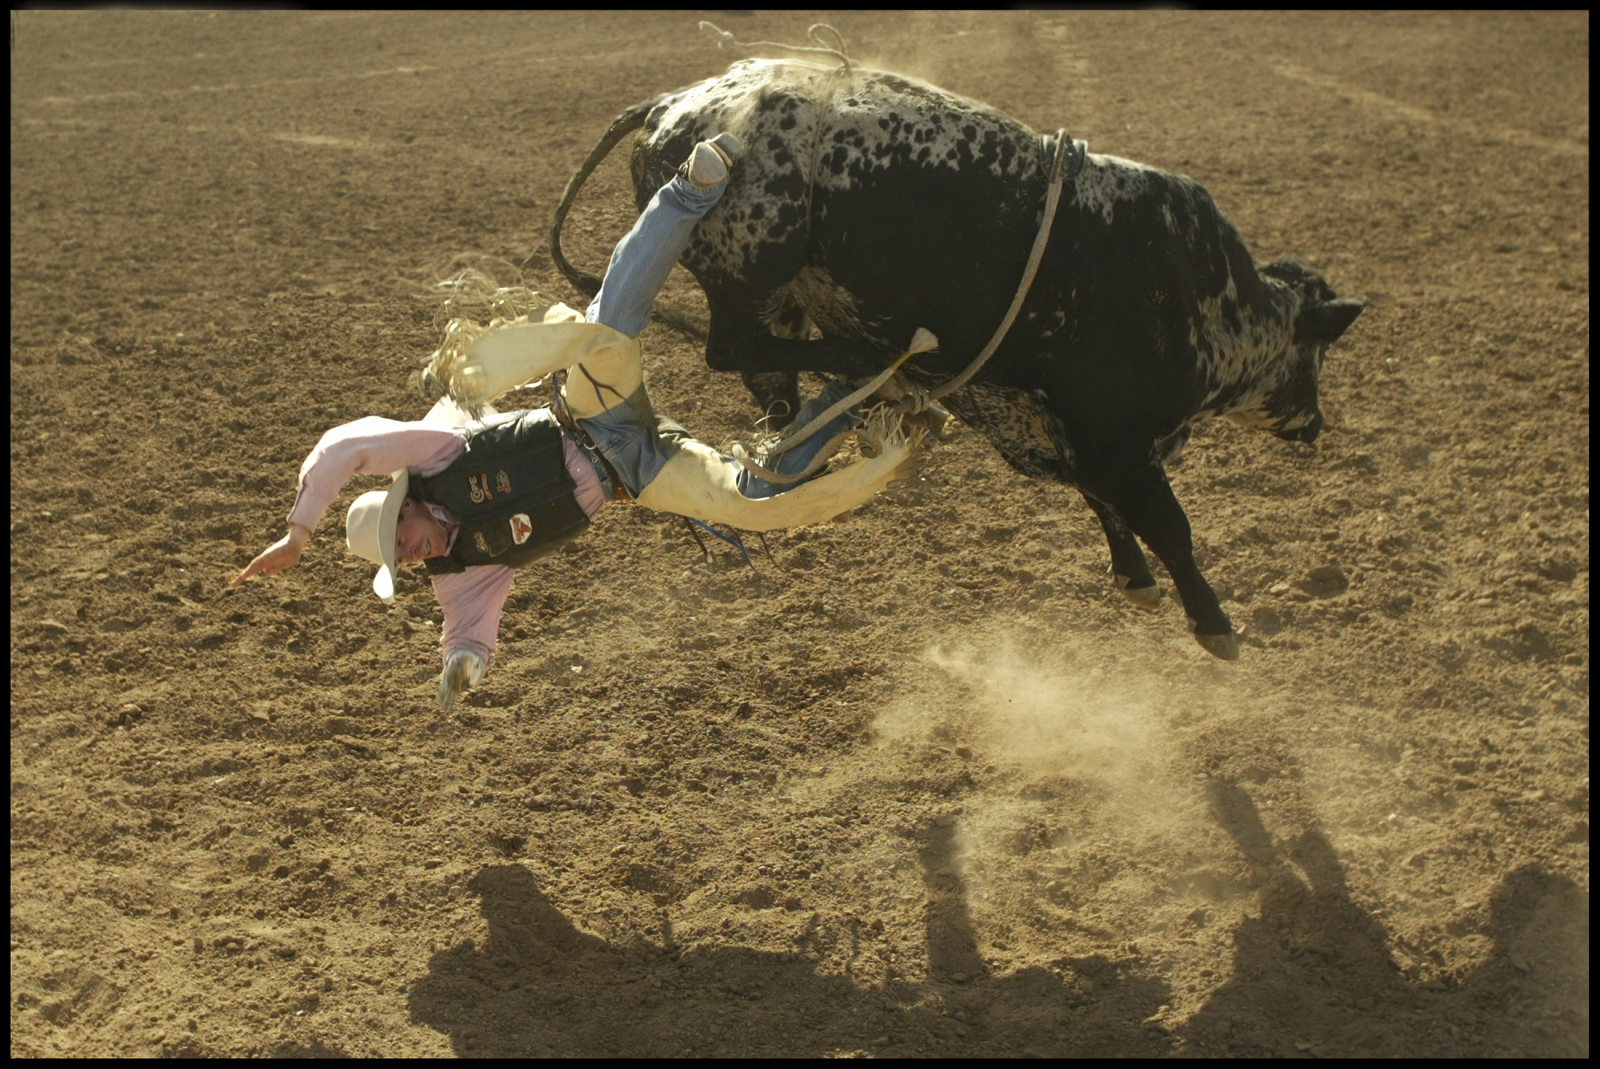 Bucked off, Tucson Rodeo. Sports Illustrated Magazine.2004.